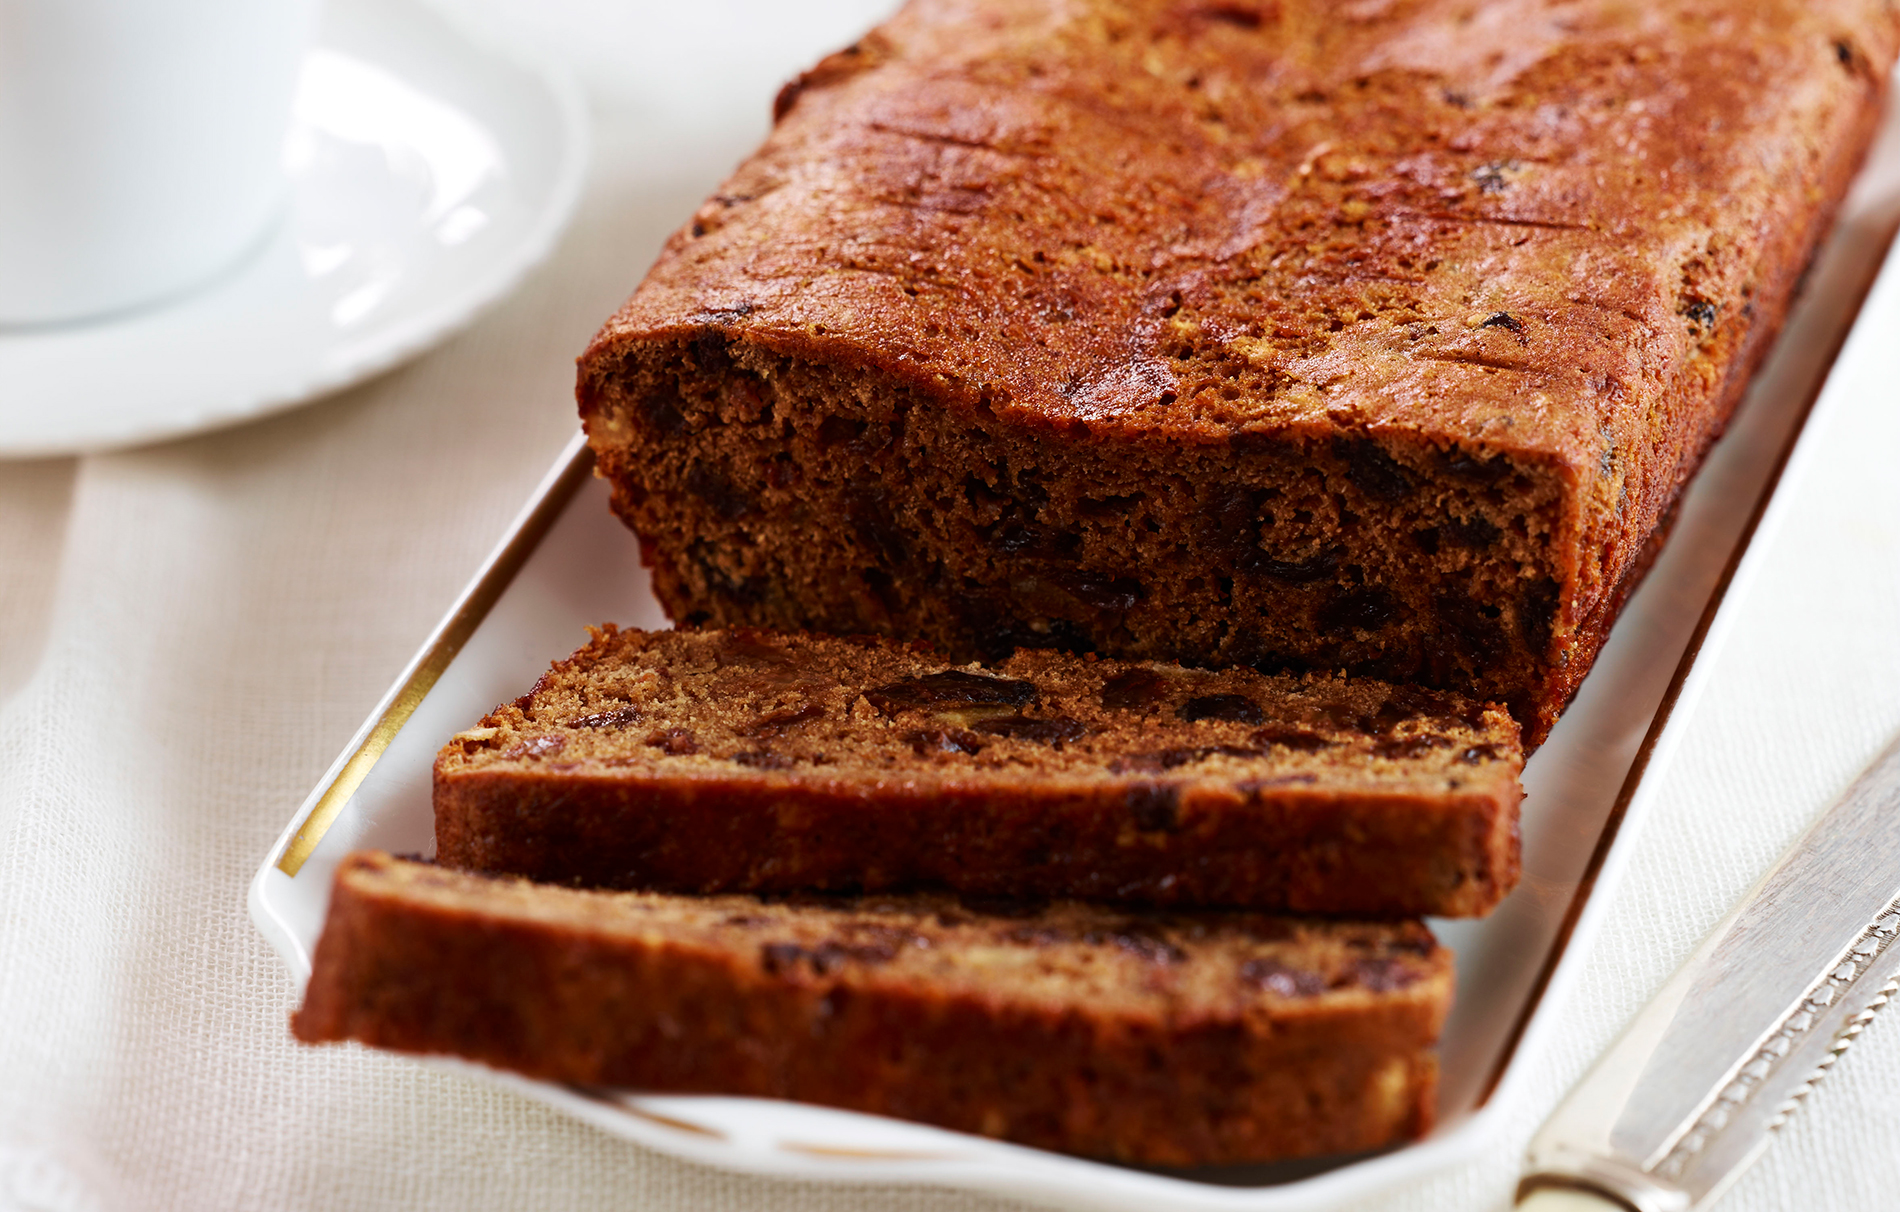 Malt Loaf Baking Recipes Goodtoknow